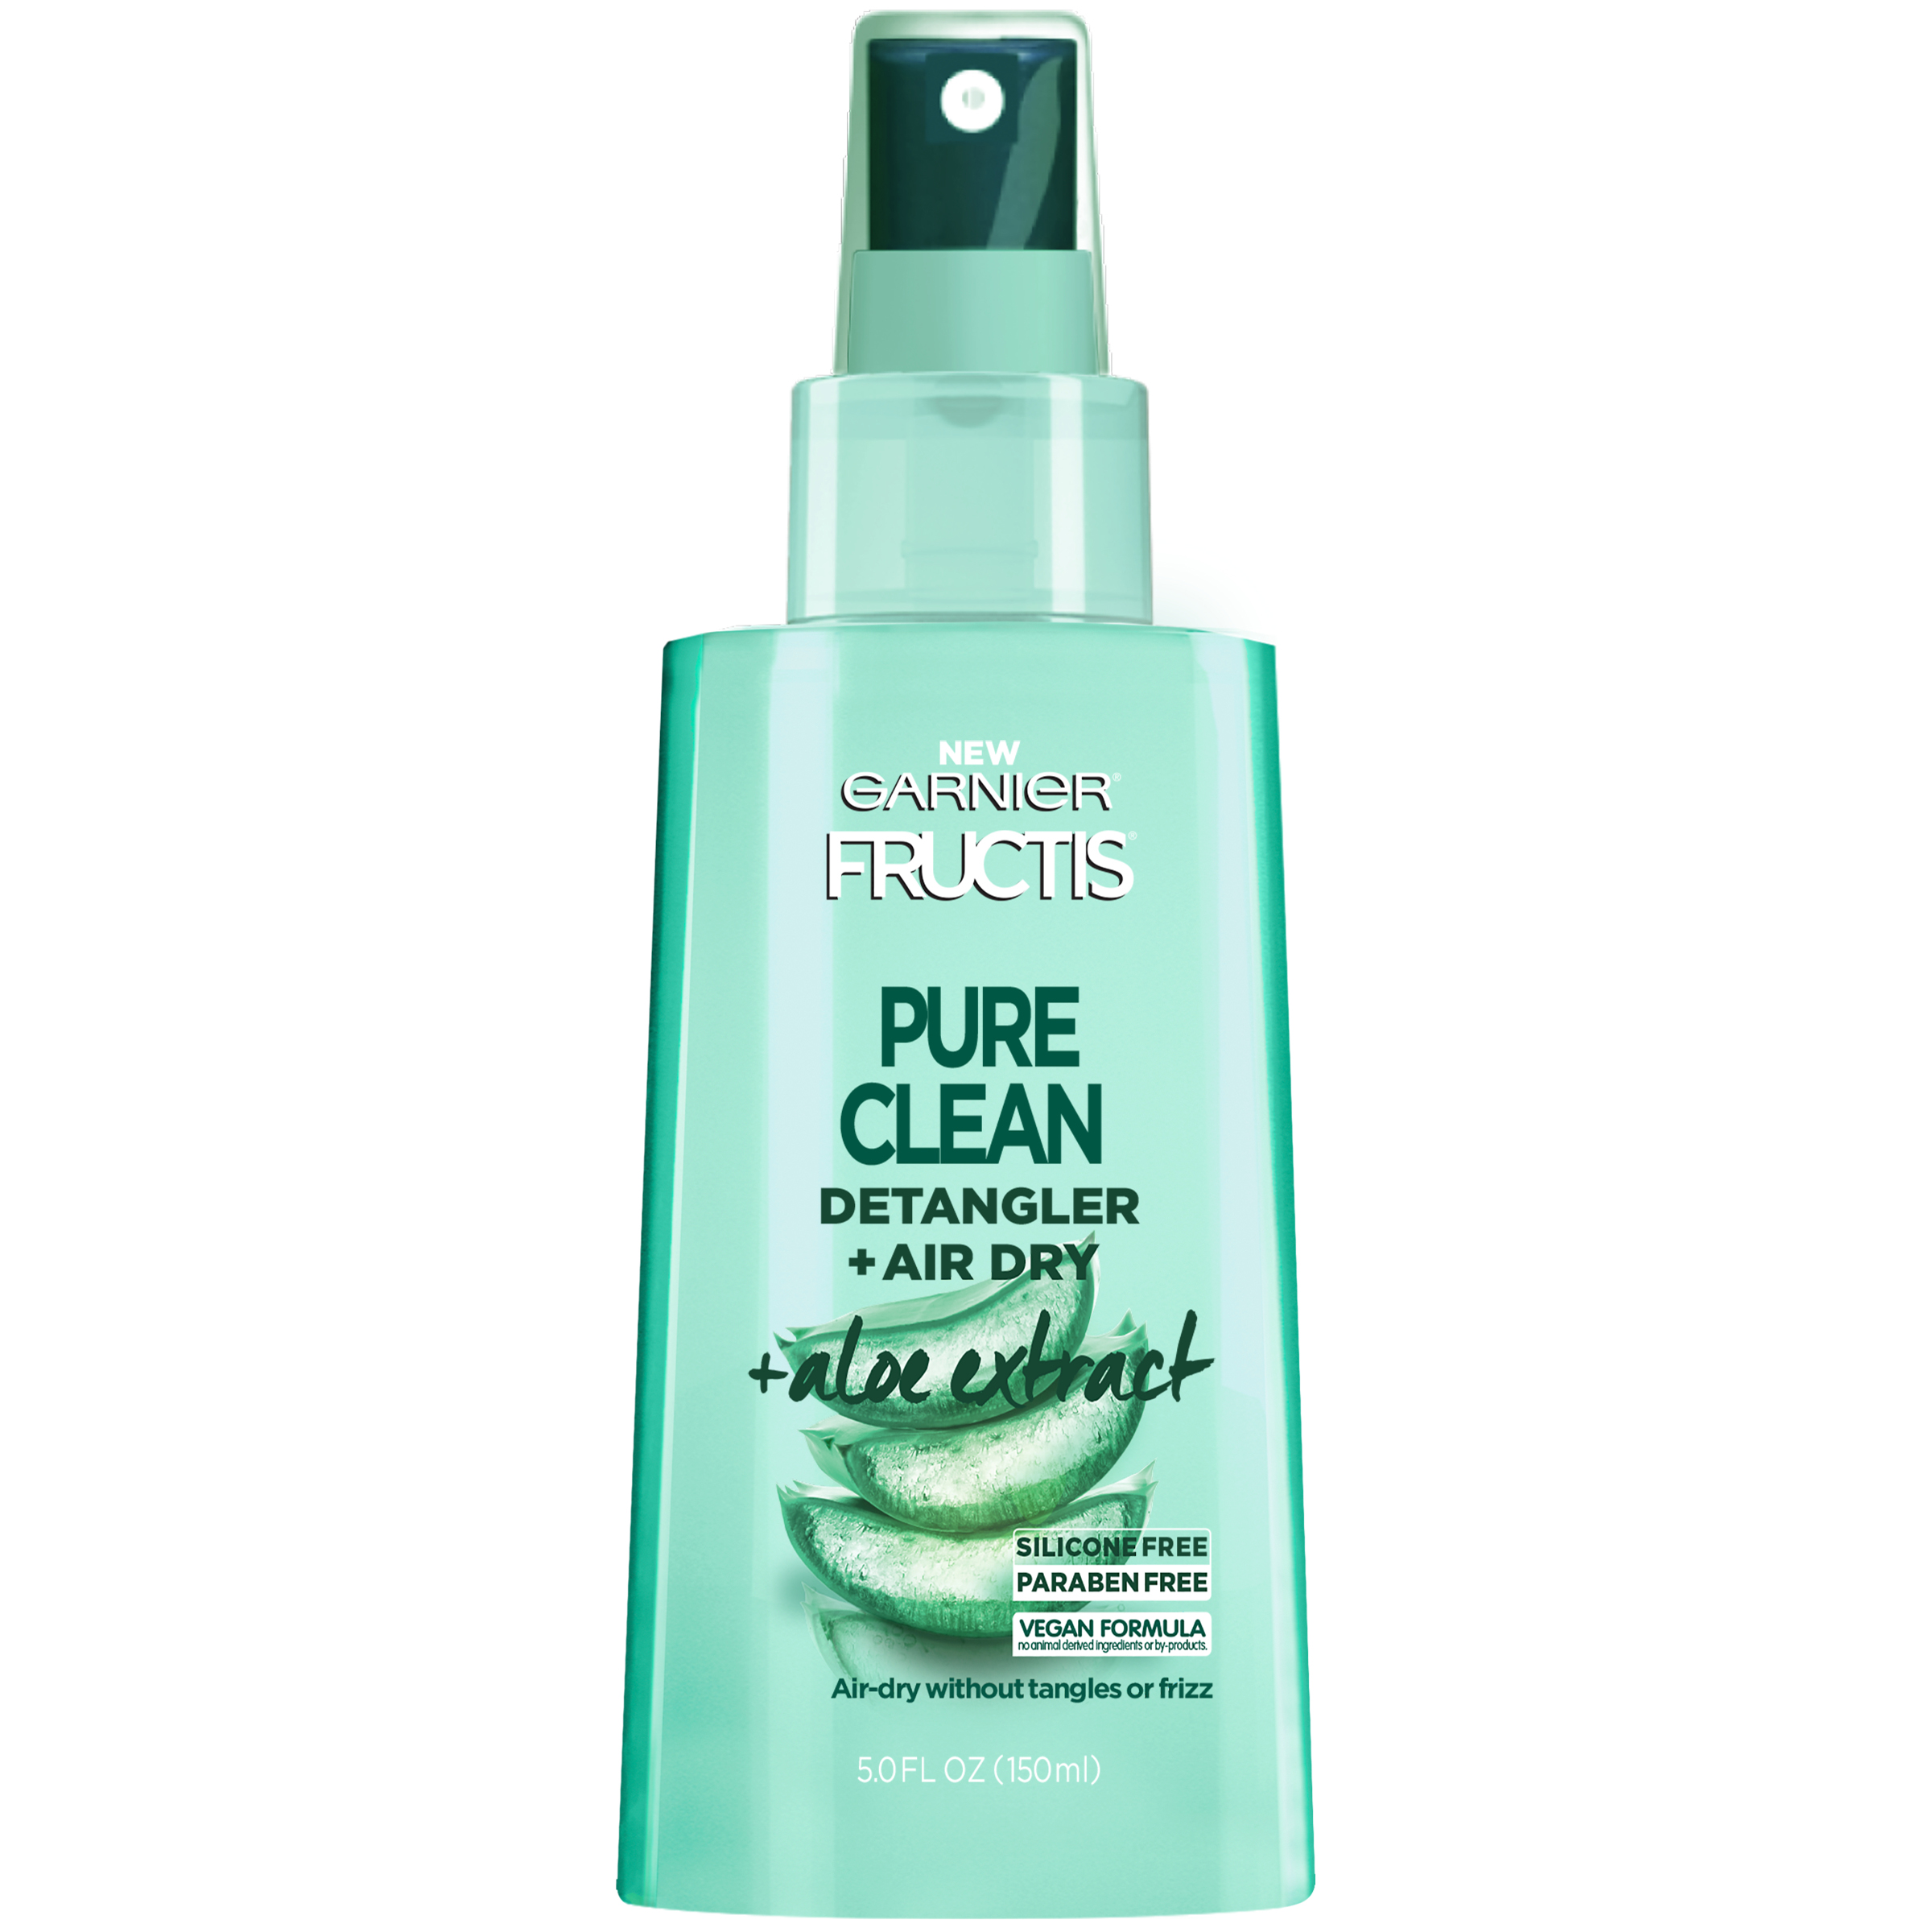 garnier-fructis-style-pure-clean-detangler-air-dry-with-aloe-extract.jpg